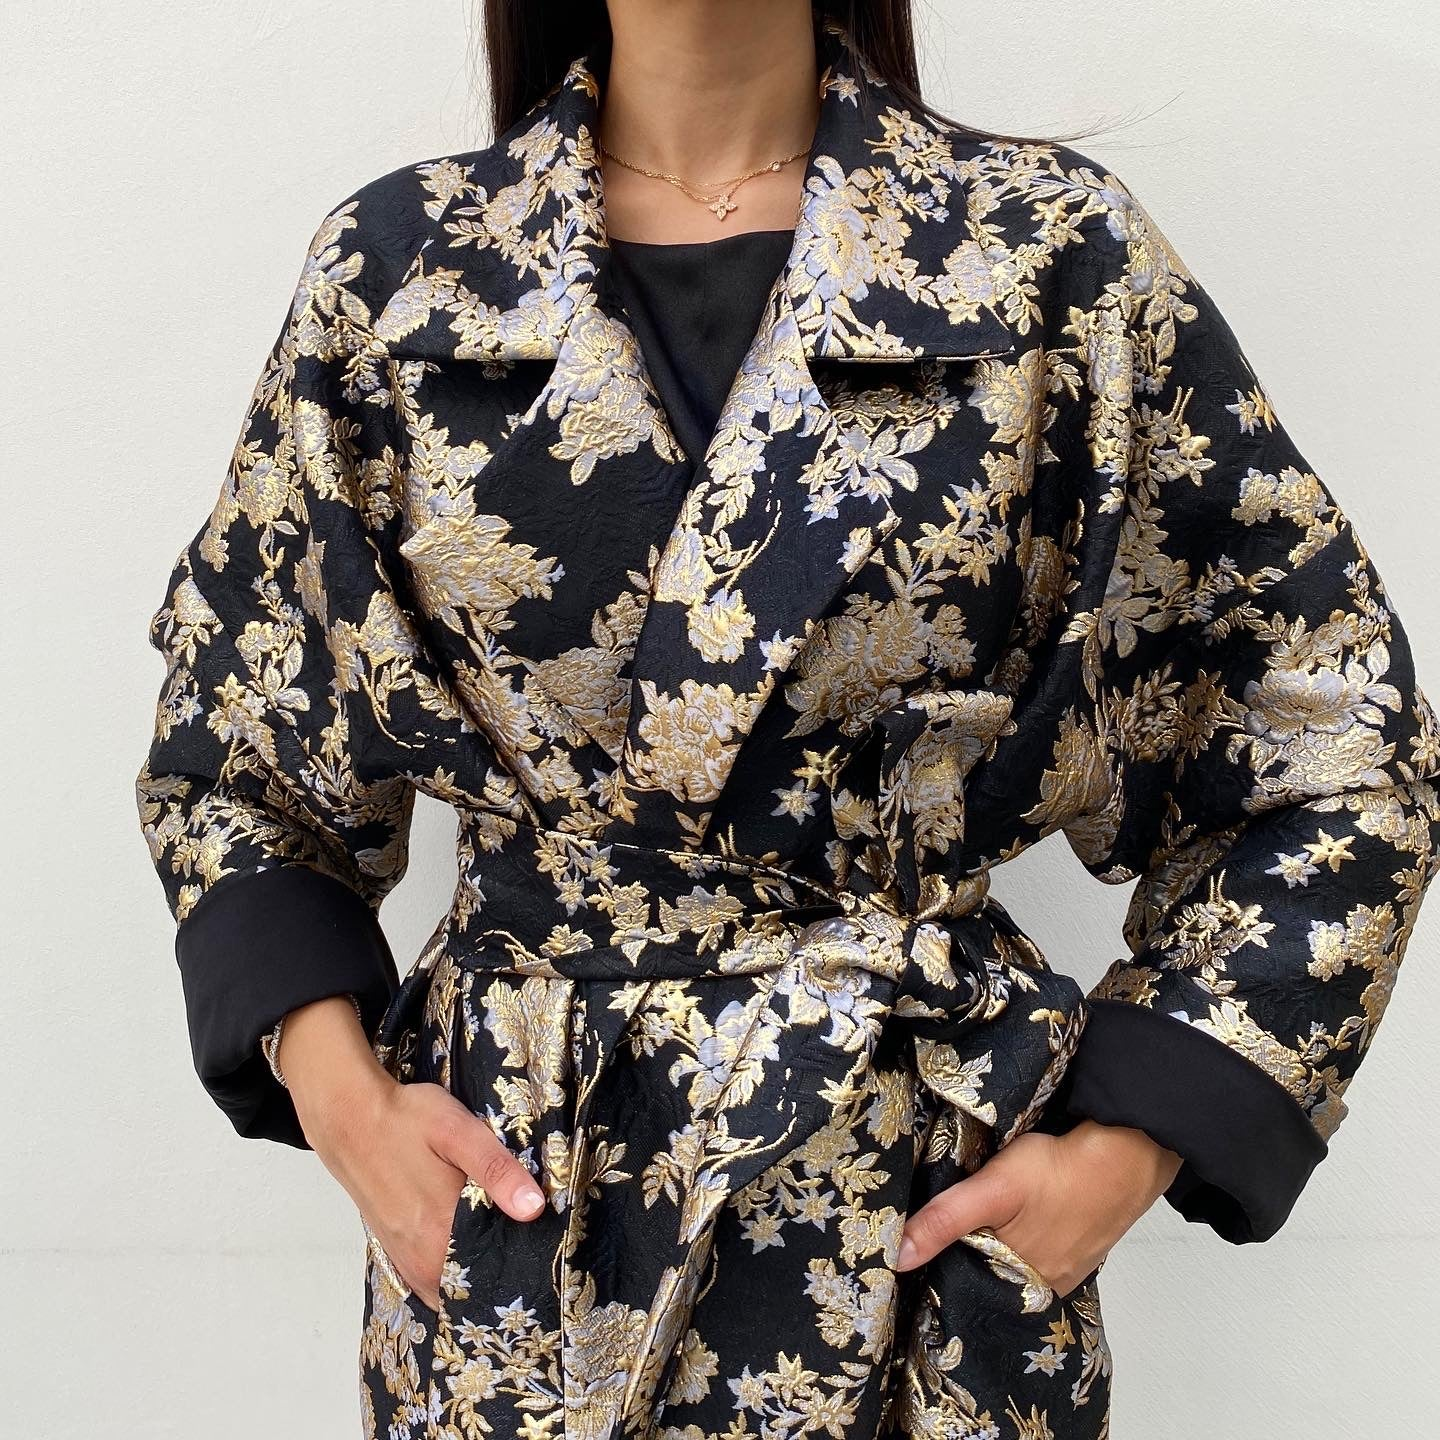 RAM20 PARIS BLACK & GOLD BROCADE LINED OVERCOAT